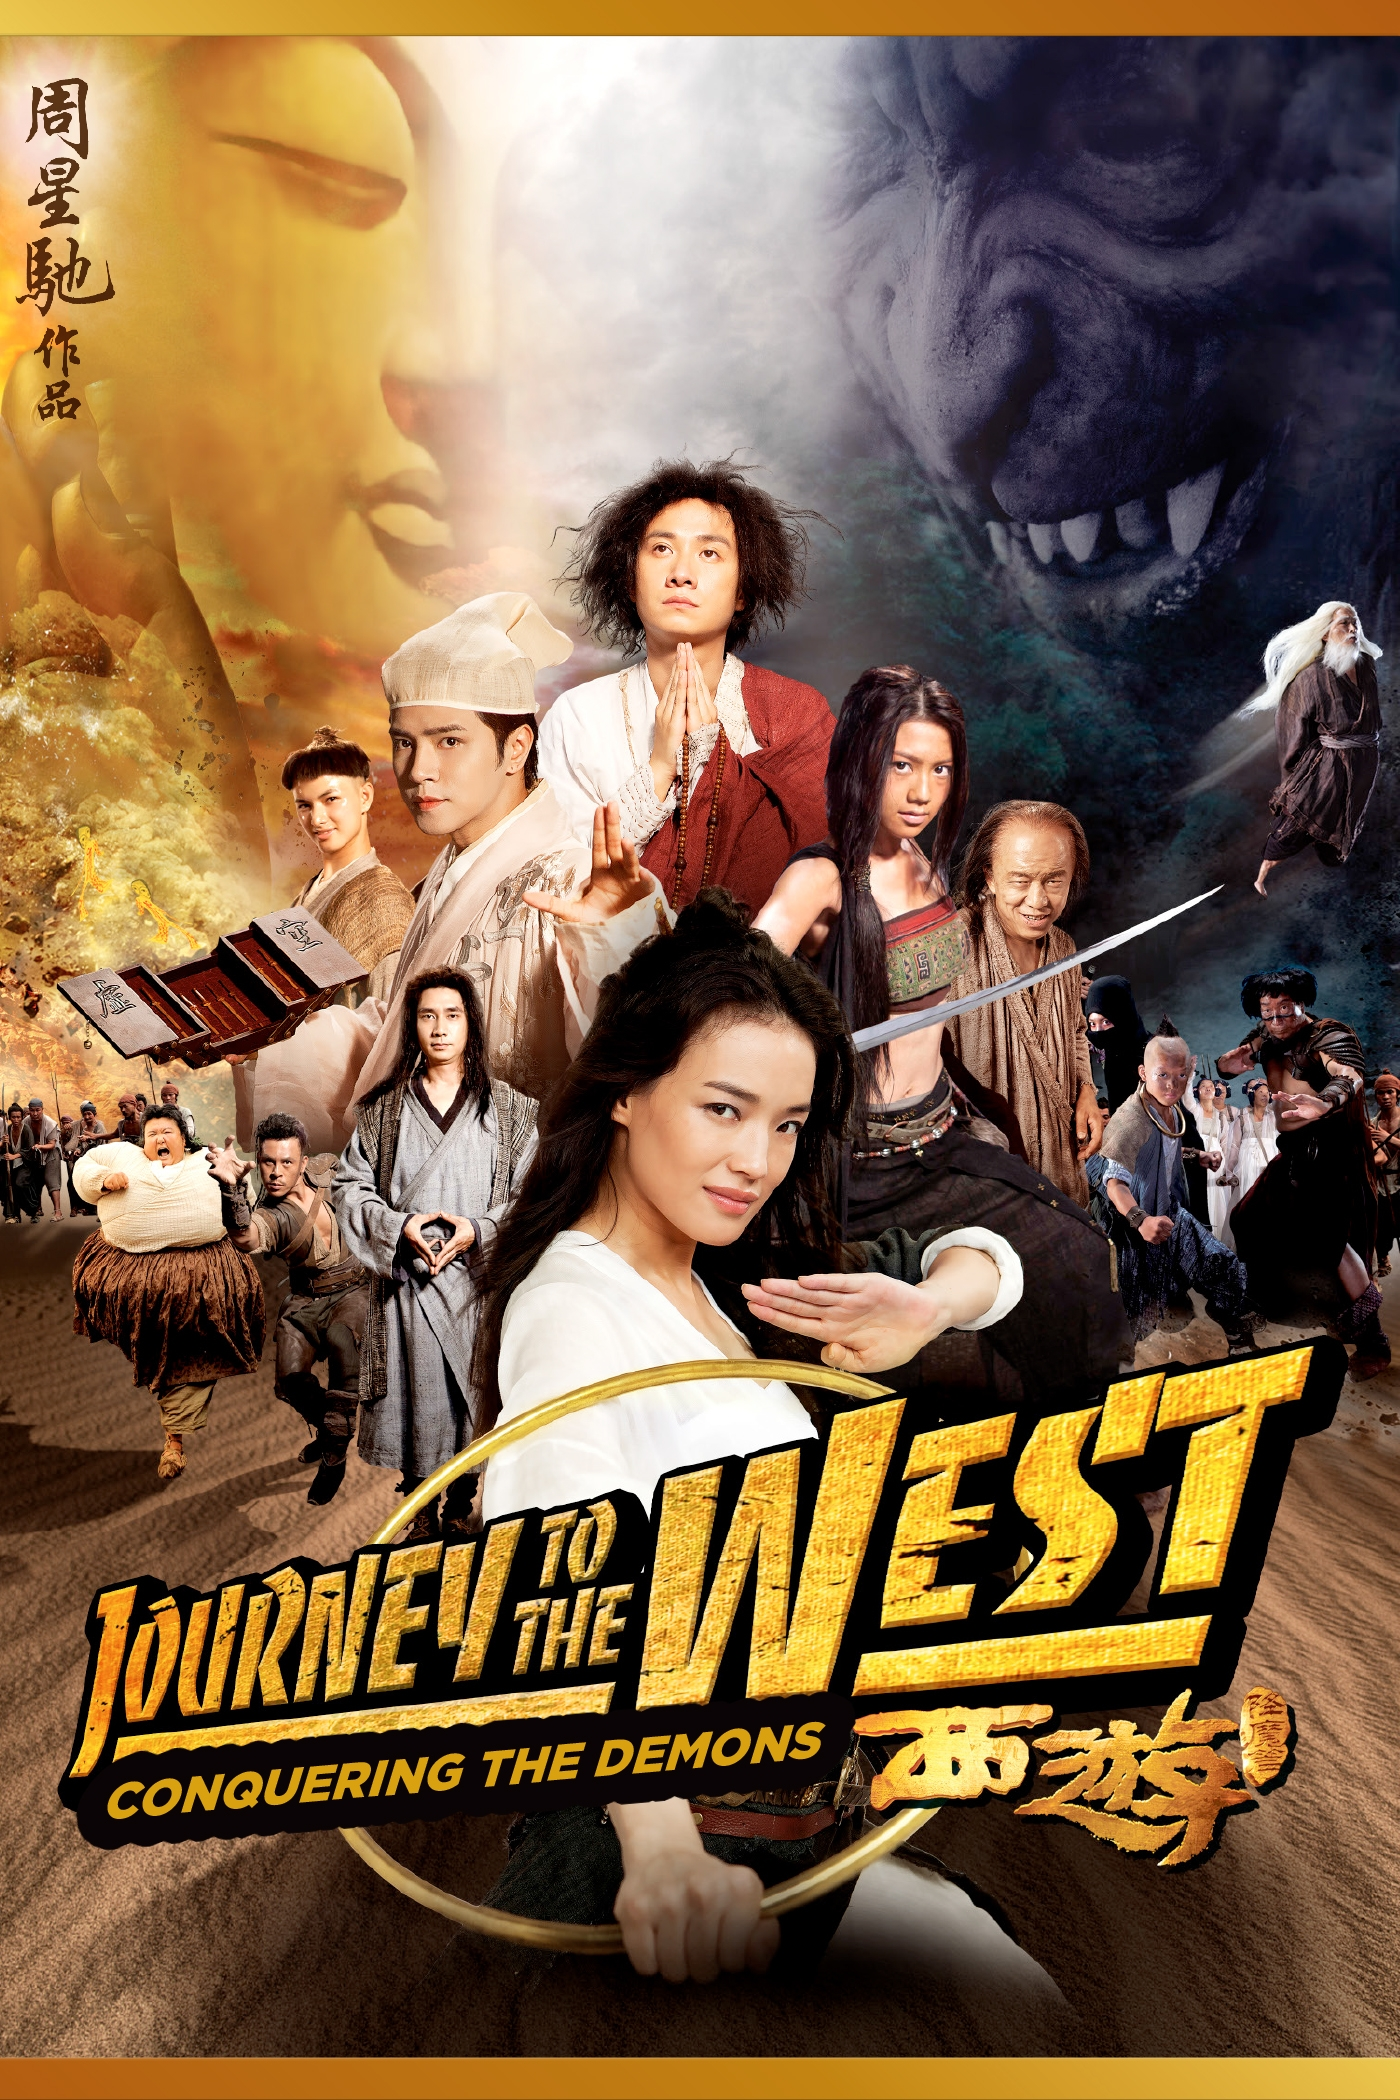 A movie poster featuring many members of the cast standing in action poses. There is an image of a golden buddha head and and a demon face in the back looking over the characters.